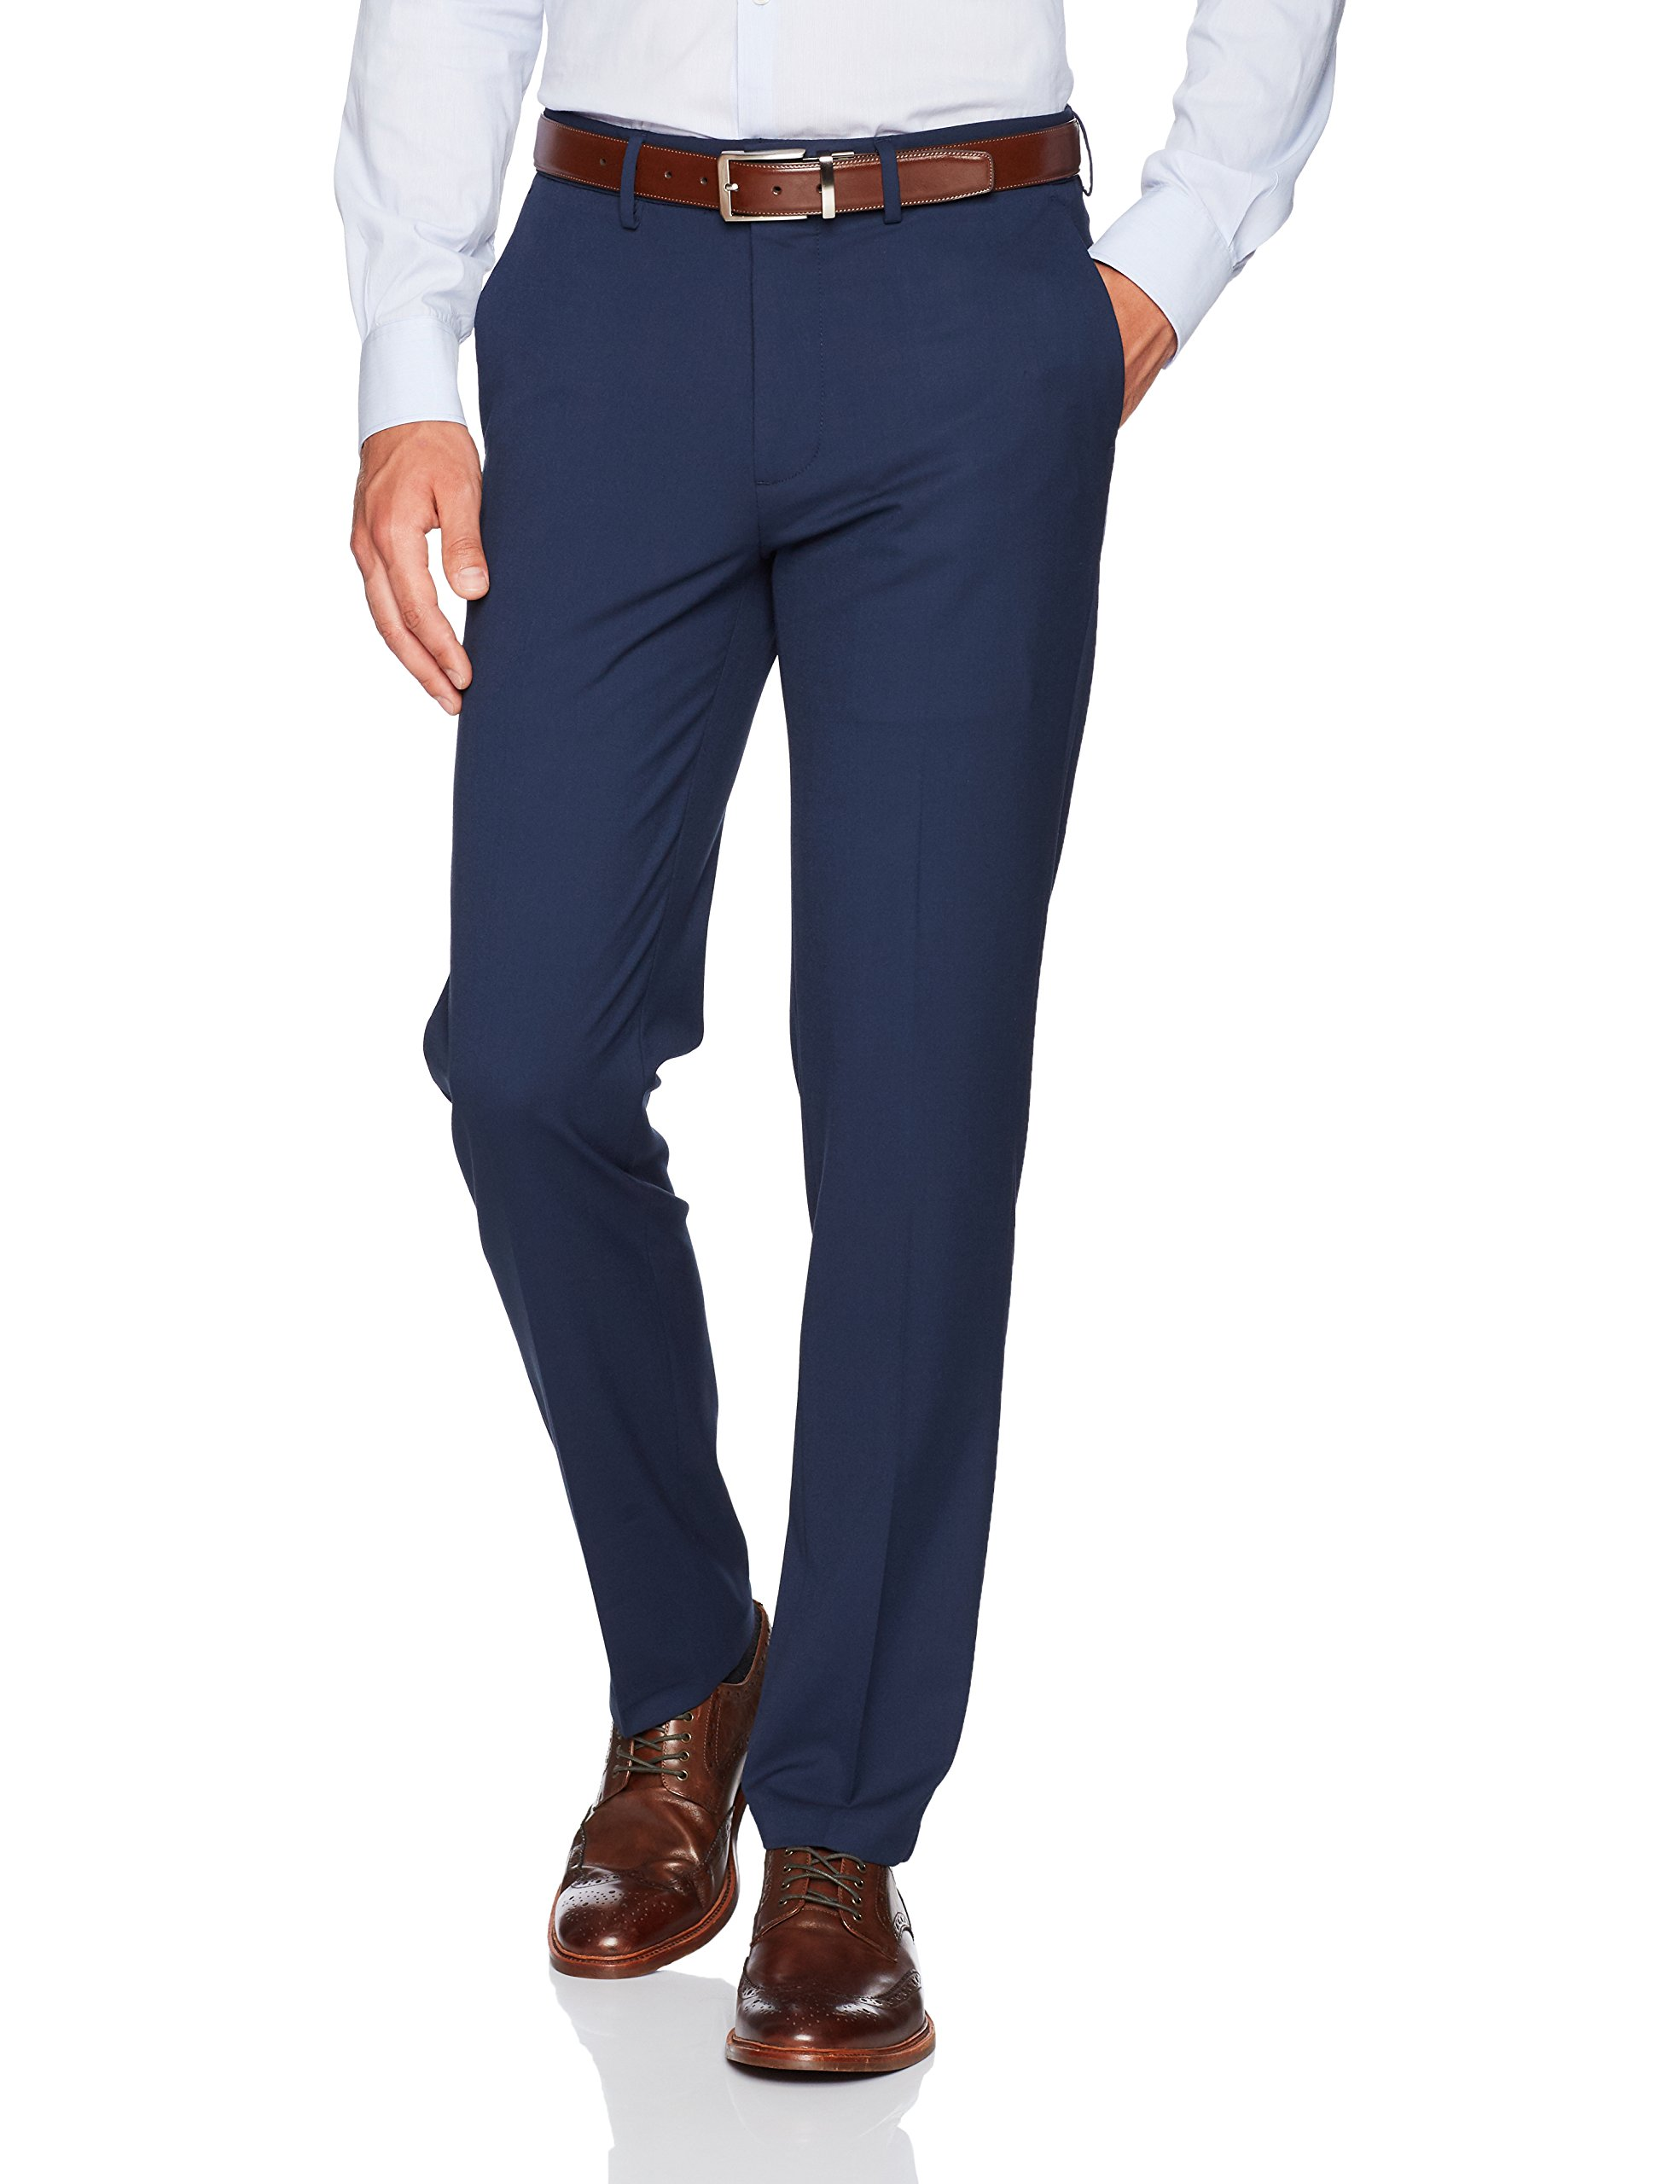 Haggar Men's J.m Stretch Superflex Waist Slim Fit Flat Front Dress Pant, Blue, 29Wx30L